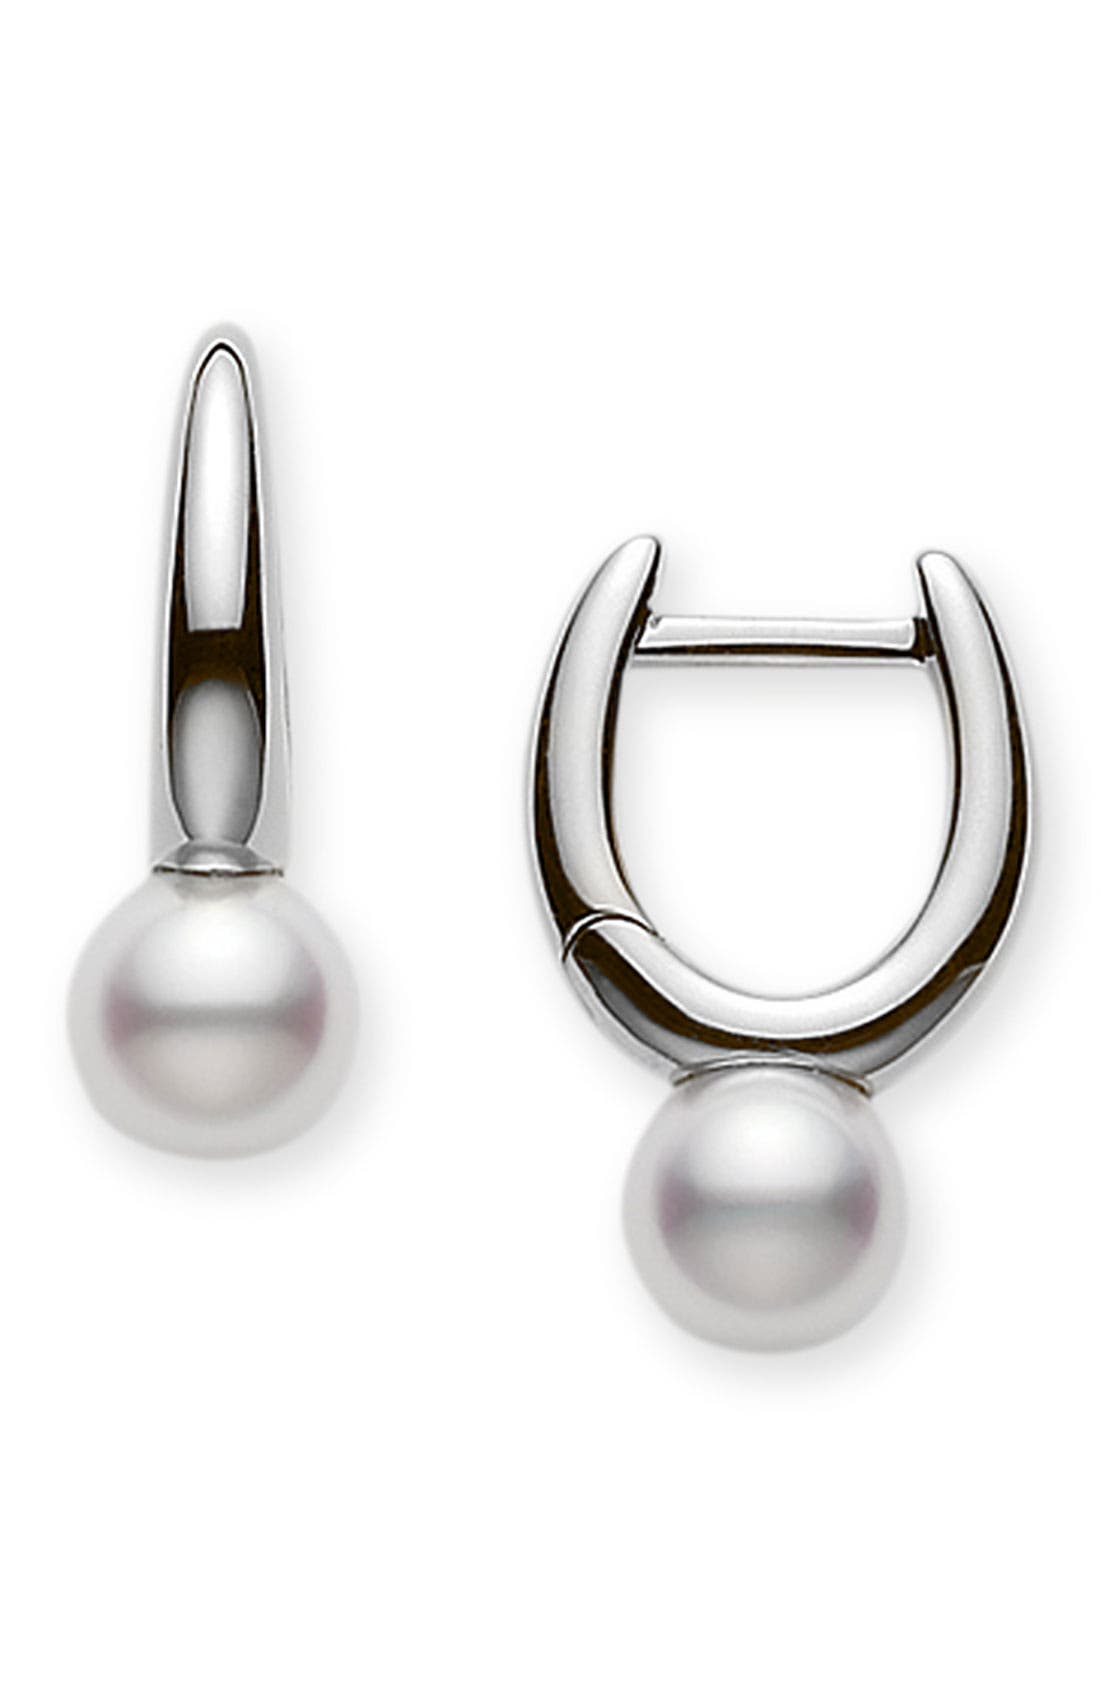 Alternate Image 1 Selected - Mikimoto Akoya Pearl Earrings